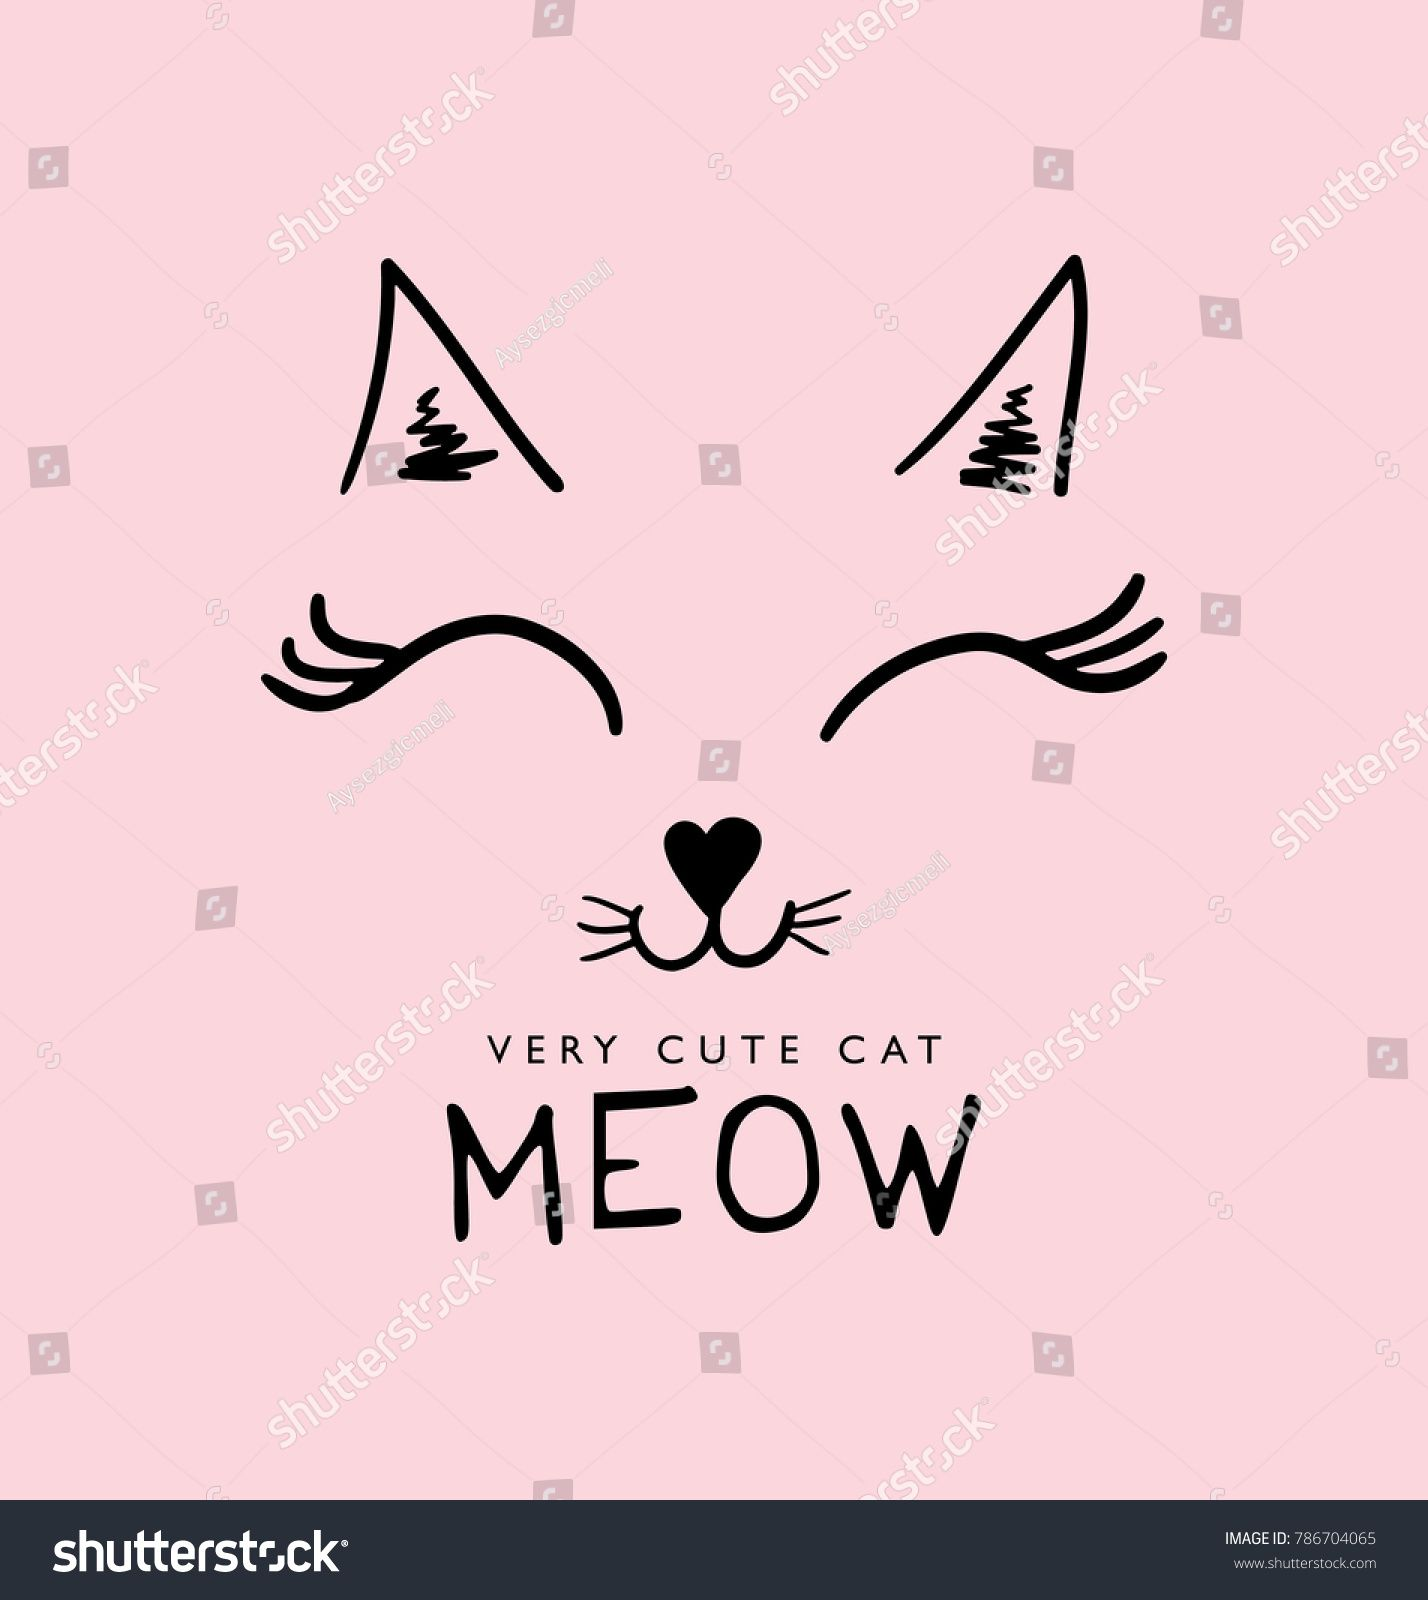 b4c352c6154 Cute cat face drawing and meow sign / Vector illustration design / Textile  graphic t shirt print